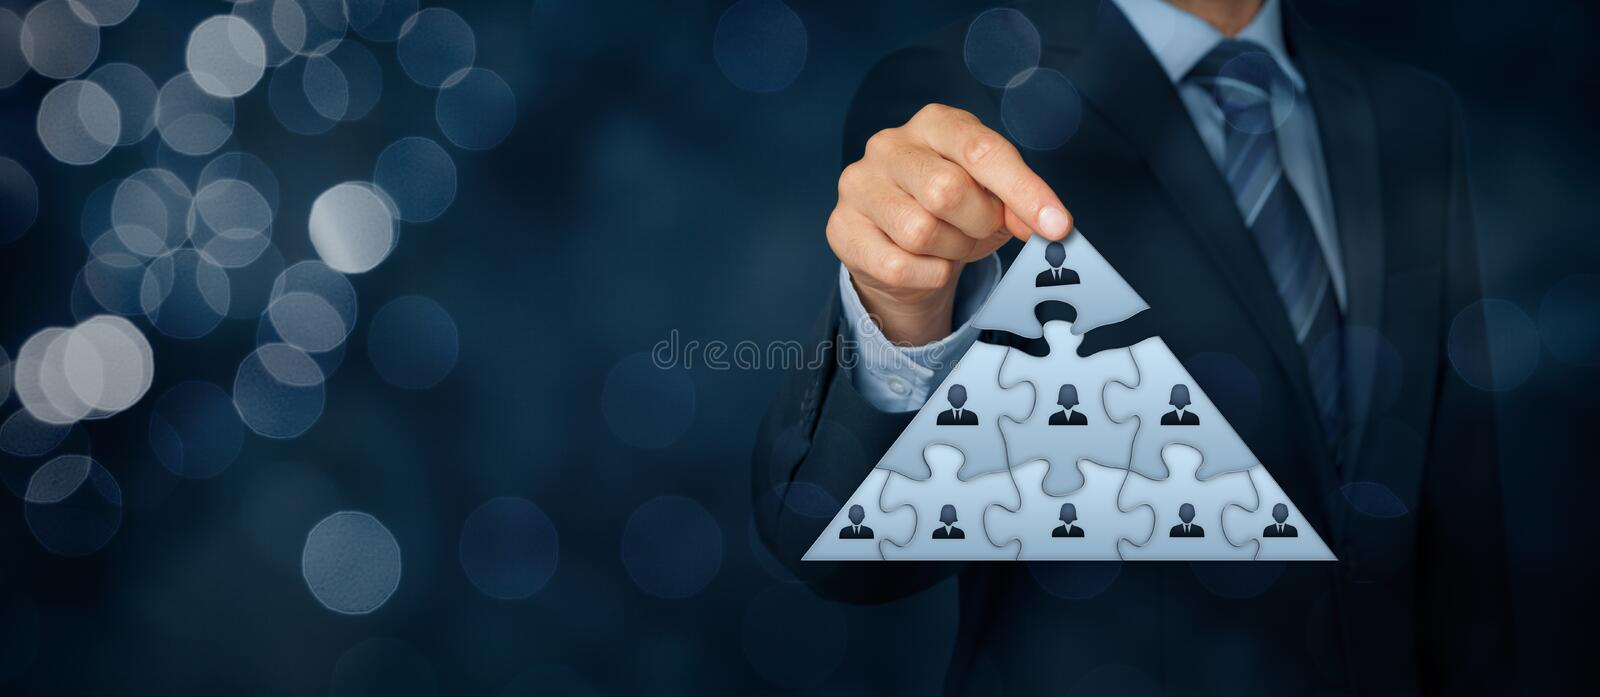 Leader and CEO. CEO, leadership and corporate hierarchy concept - recruiter complete team represented by puzzle in pyramid scheme by one leader person (CEO) royalty free stock images